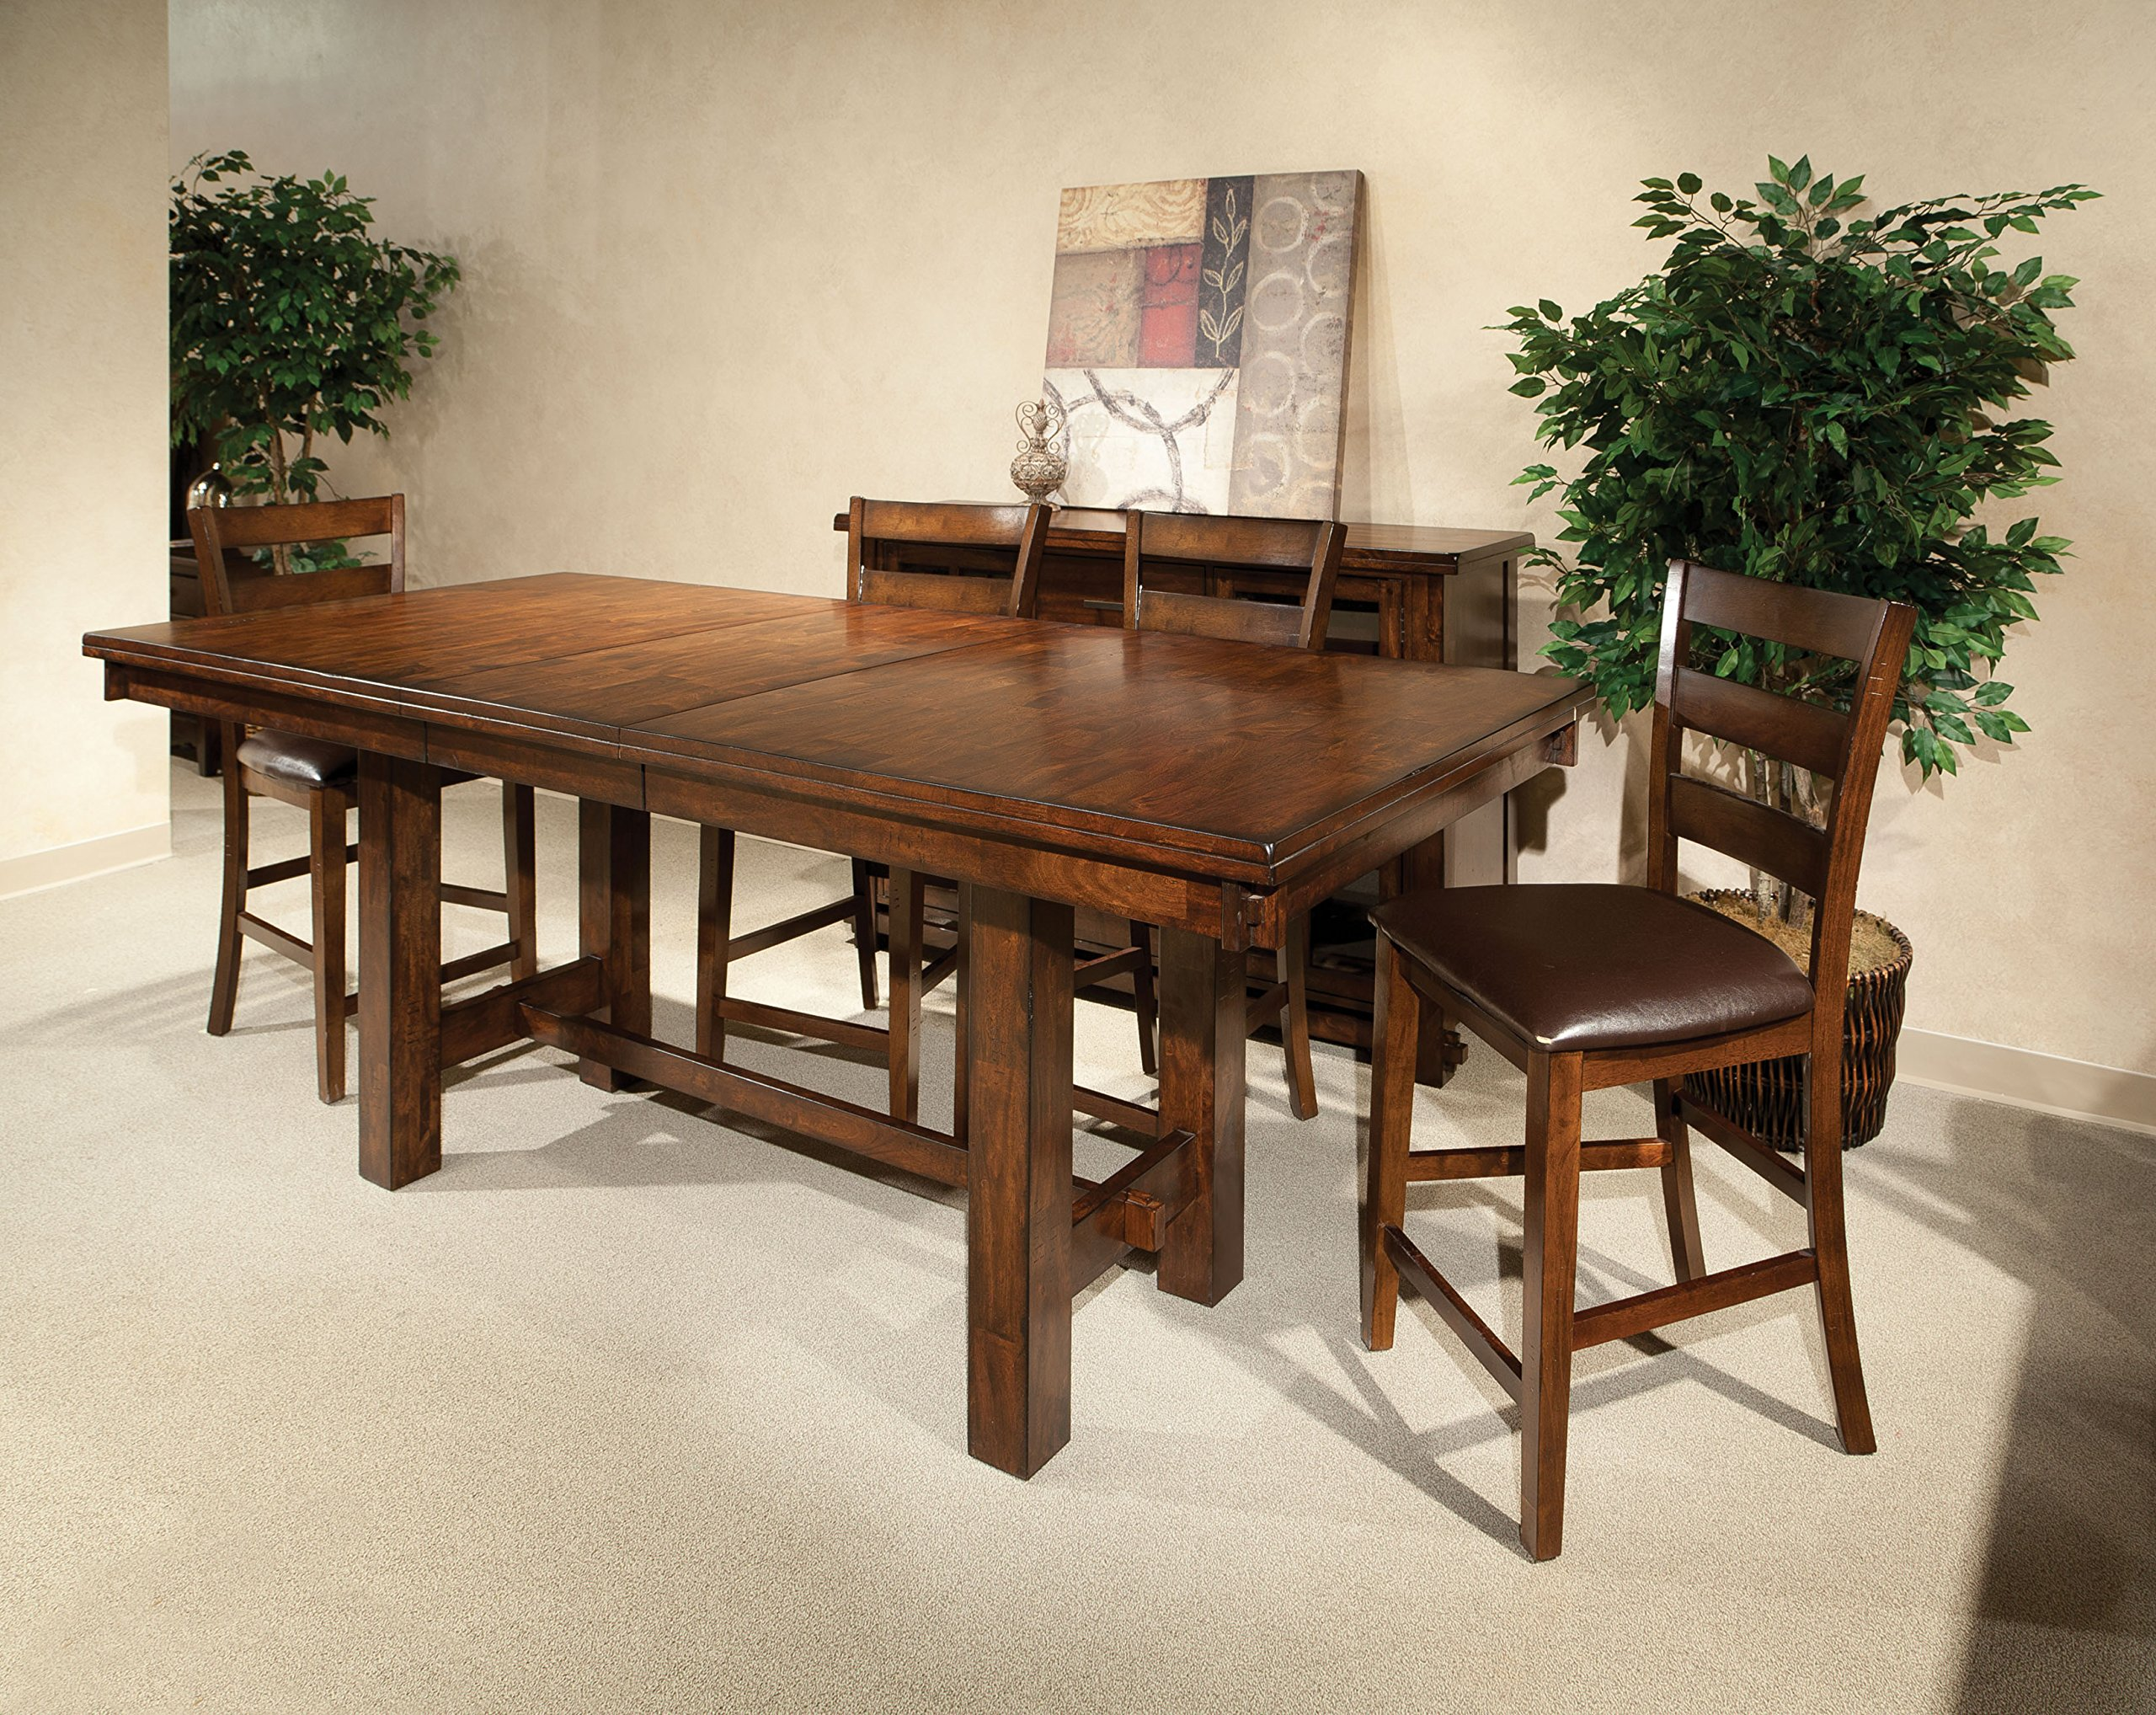 Intercon Kona Mango Wood 7 Pc Trestle Gathering Set - Constructed of solid mango wood and select hardwoods Unique hand distressing with a brushed Raisin finish ladder back barstools with cushion seats - kitchen-dining-room-furniture, kitchen-dining-room, dining-sets - A1ZF4m%2BUB9L -